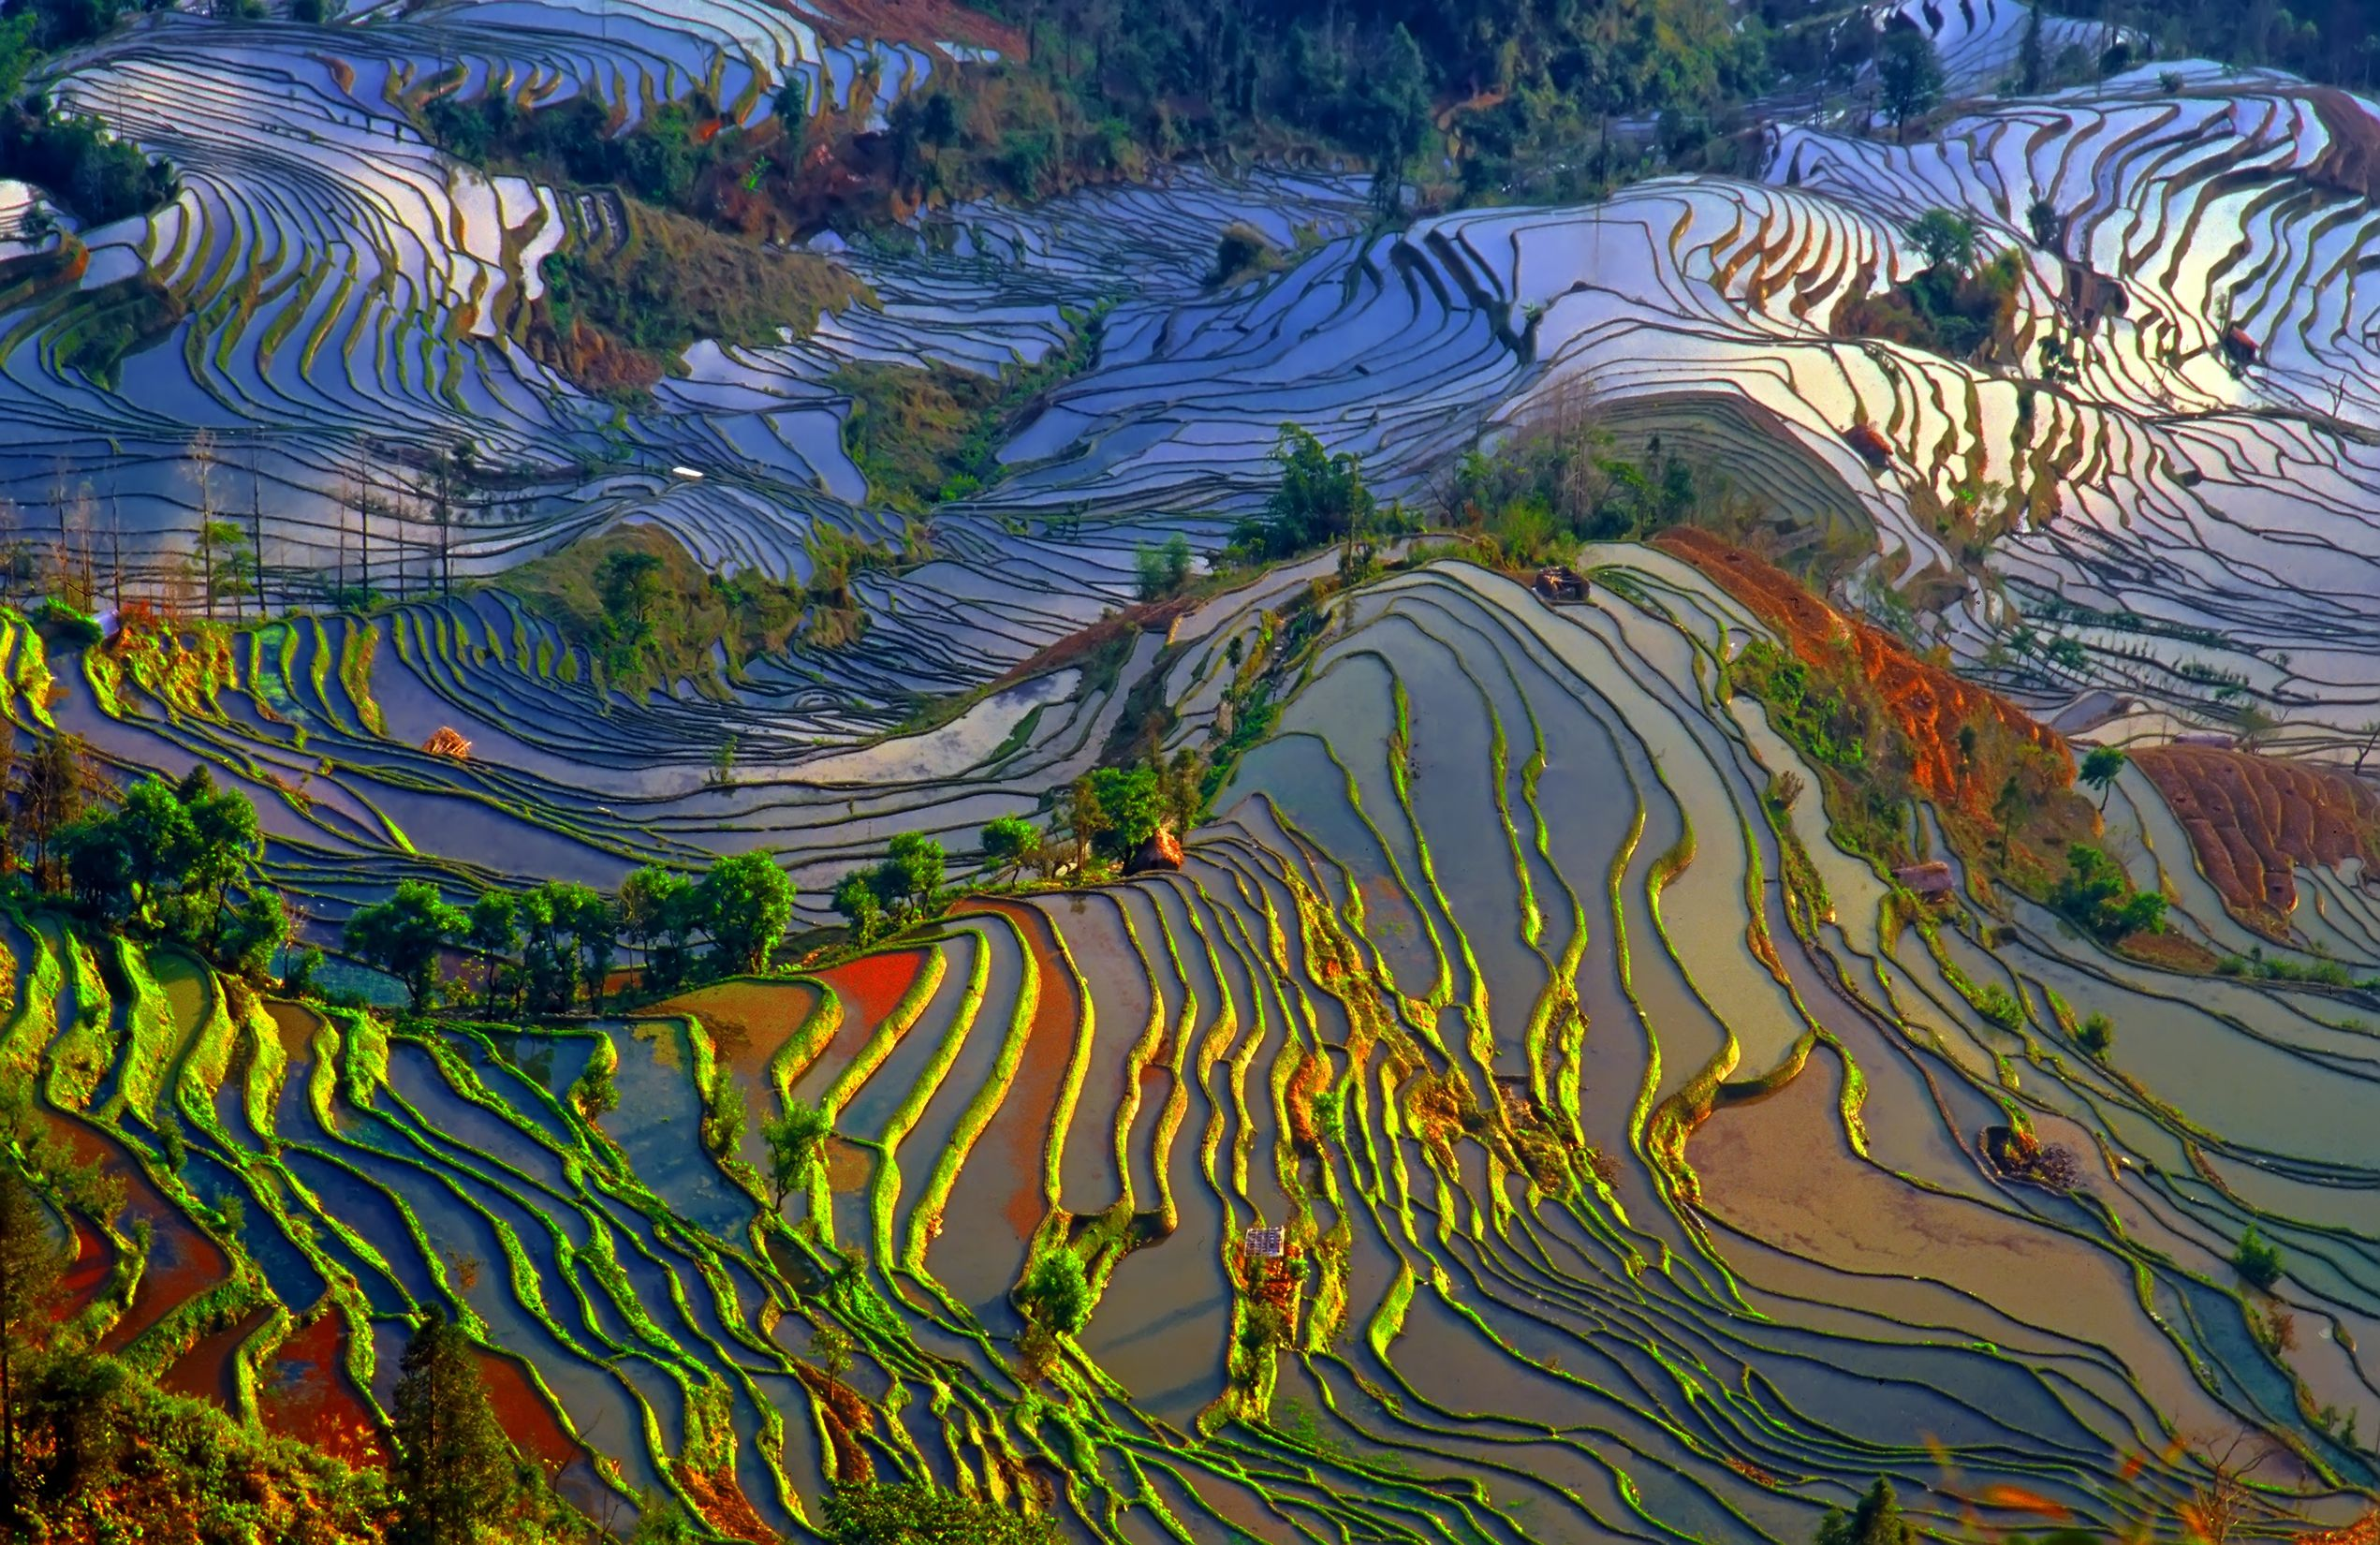 Celebrating Earth Day with The 10 Most Beautiful Places on Earth